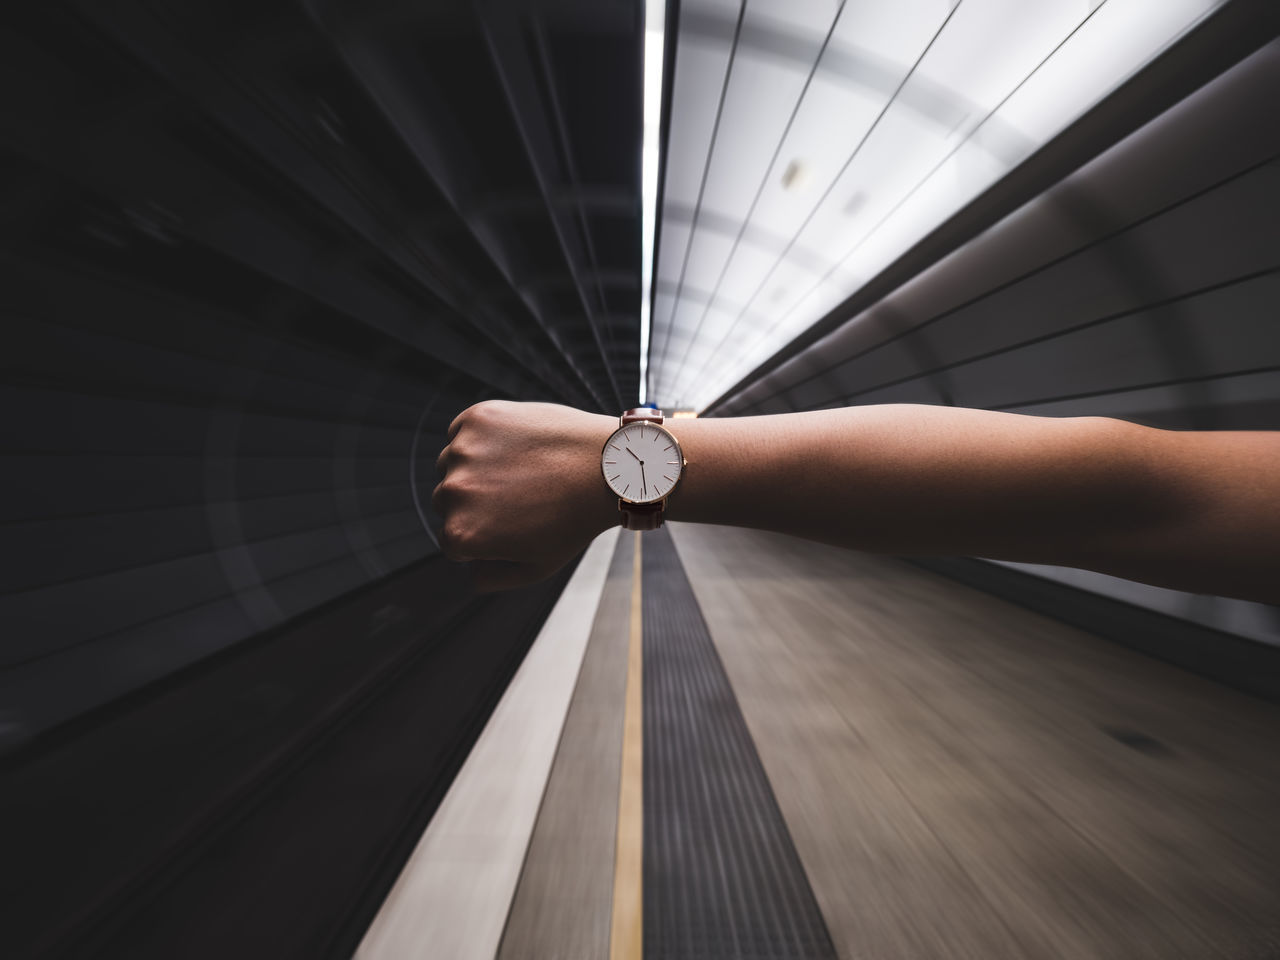 Architectural Feature Architecture Blur Business Circle First Eyeem Photo Geometric Shape Hand Indoors  Modern Motion Blur Pattern Rush Shape Subway Subway Station Time Underground Vanishing Point Waiting Watch Photography In Motion